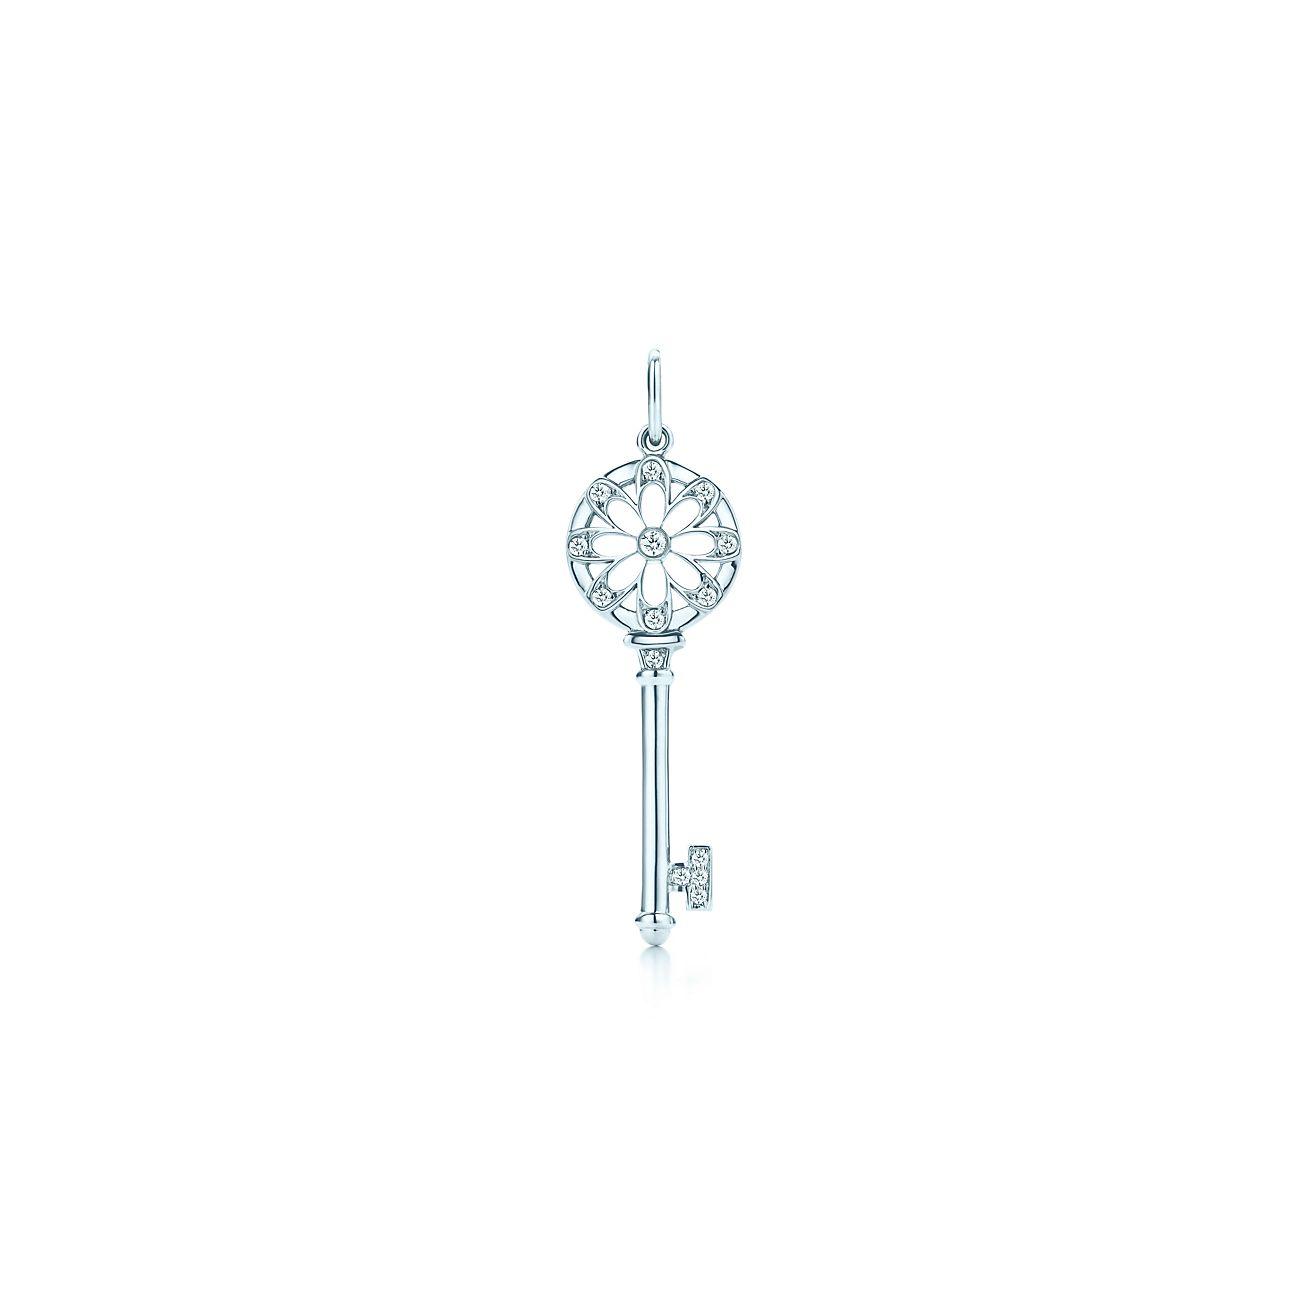 Tiffany keys floral key pendant in 18k white gold with diamonds tiffany keysfloral key pendant aloadofball